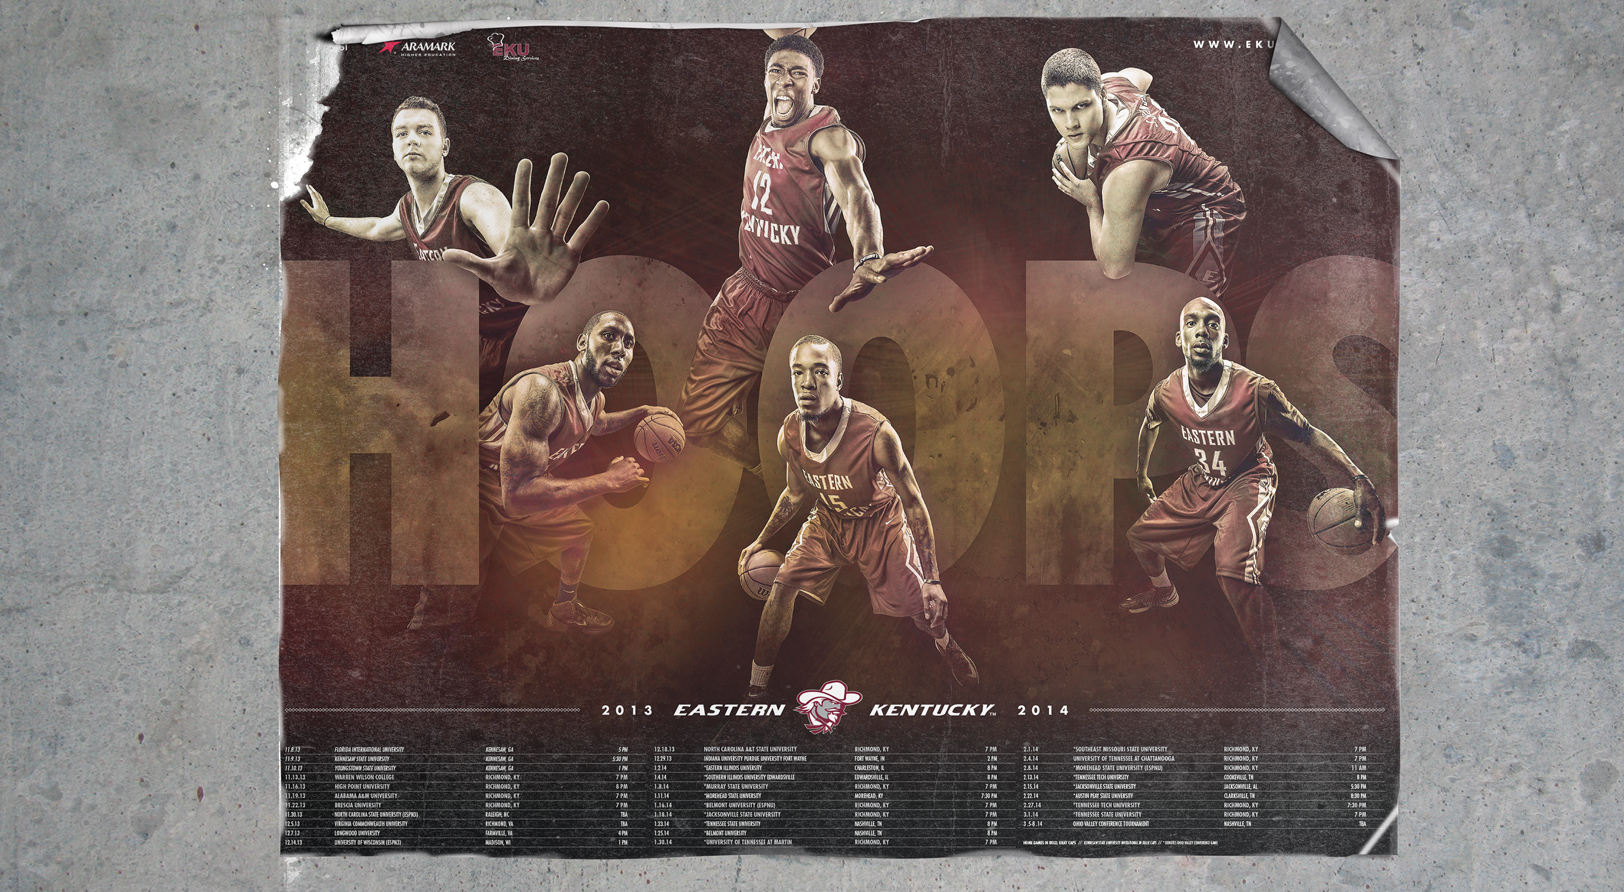 EKU men's basketball sports design concept for the 2013-14 Sports Marketing campaign poster